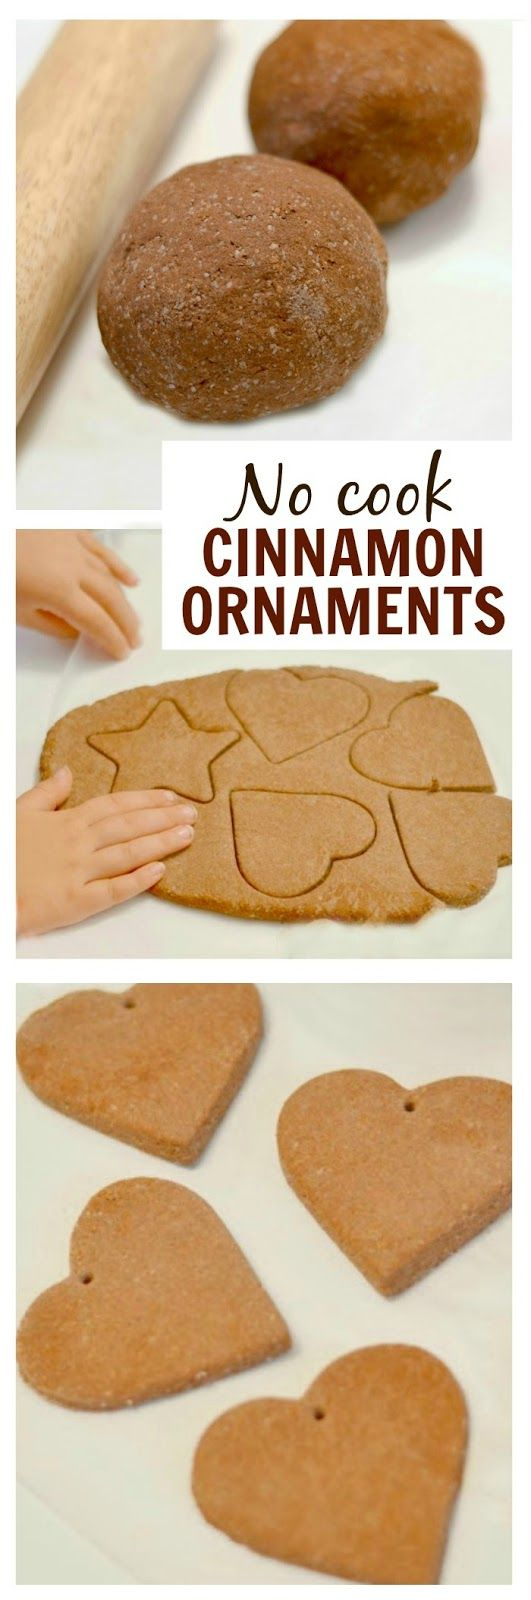 No Cook Cinnamon Ornaments (from Growing a Jeweled Rose)